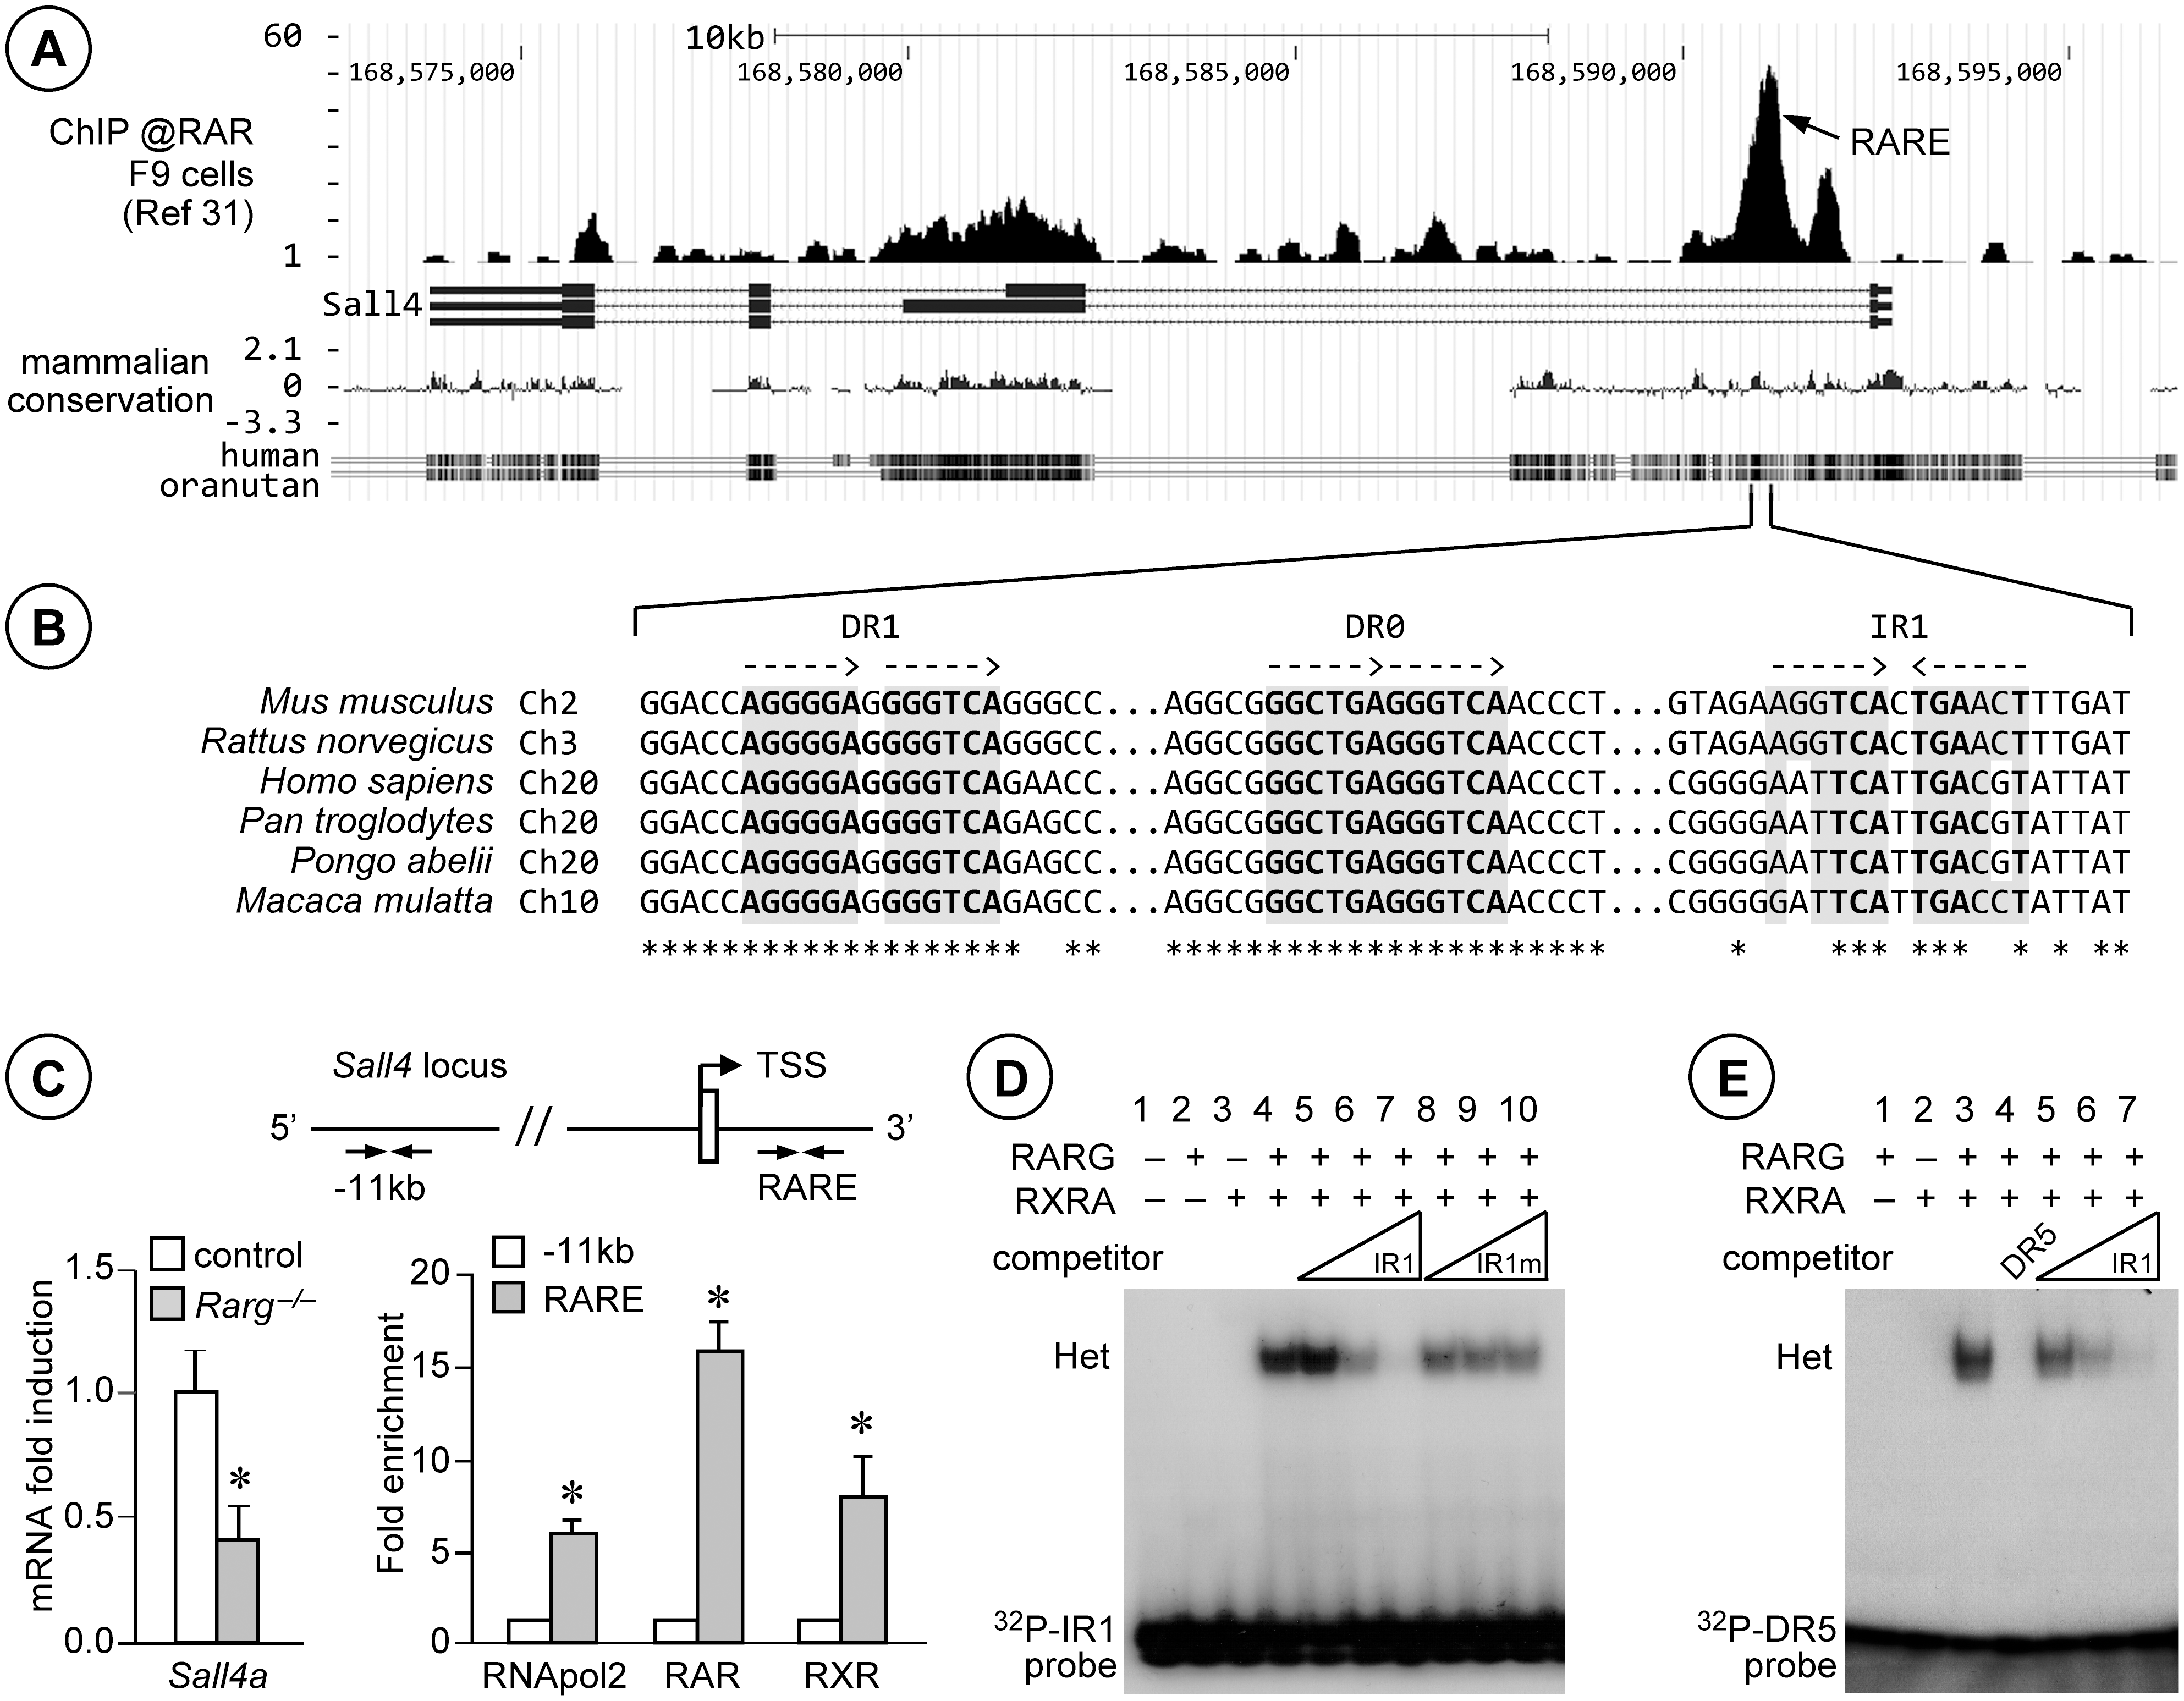 RARG/RXRA heterodimers bind to <i>Sall4</i> in testis chromatin, on an IR1 motif located in the first intron.